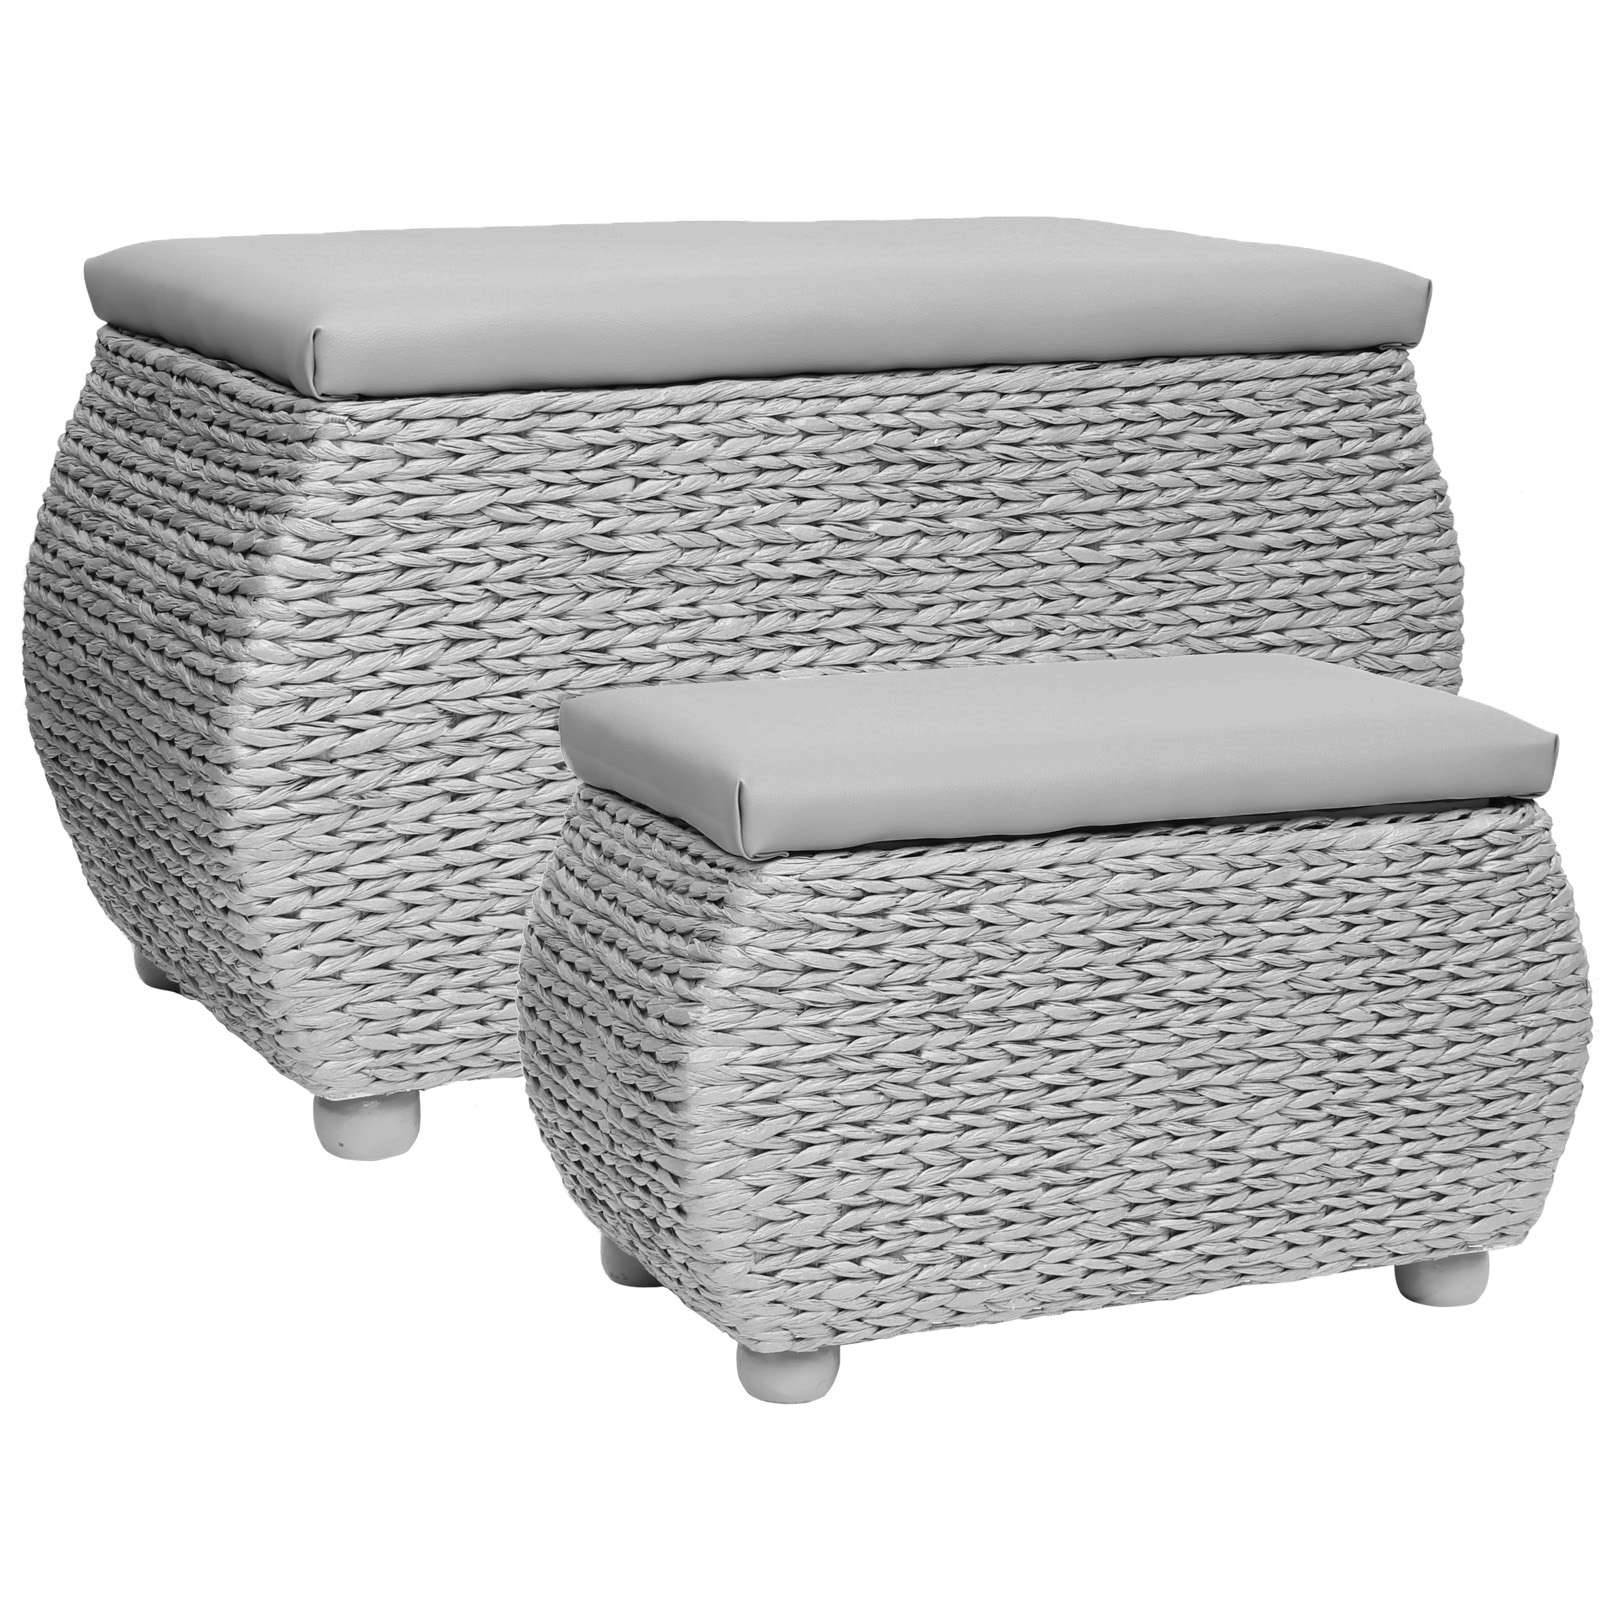 Hartleys Twin Storage Trunk Stool Bedding Blanket Rattan Wicker Box Bench Seat Ebay